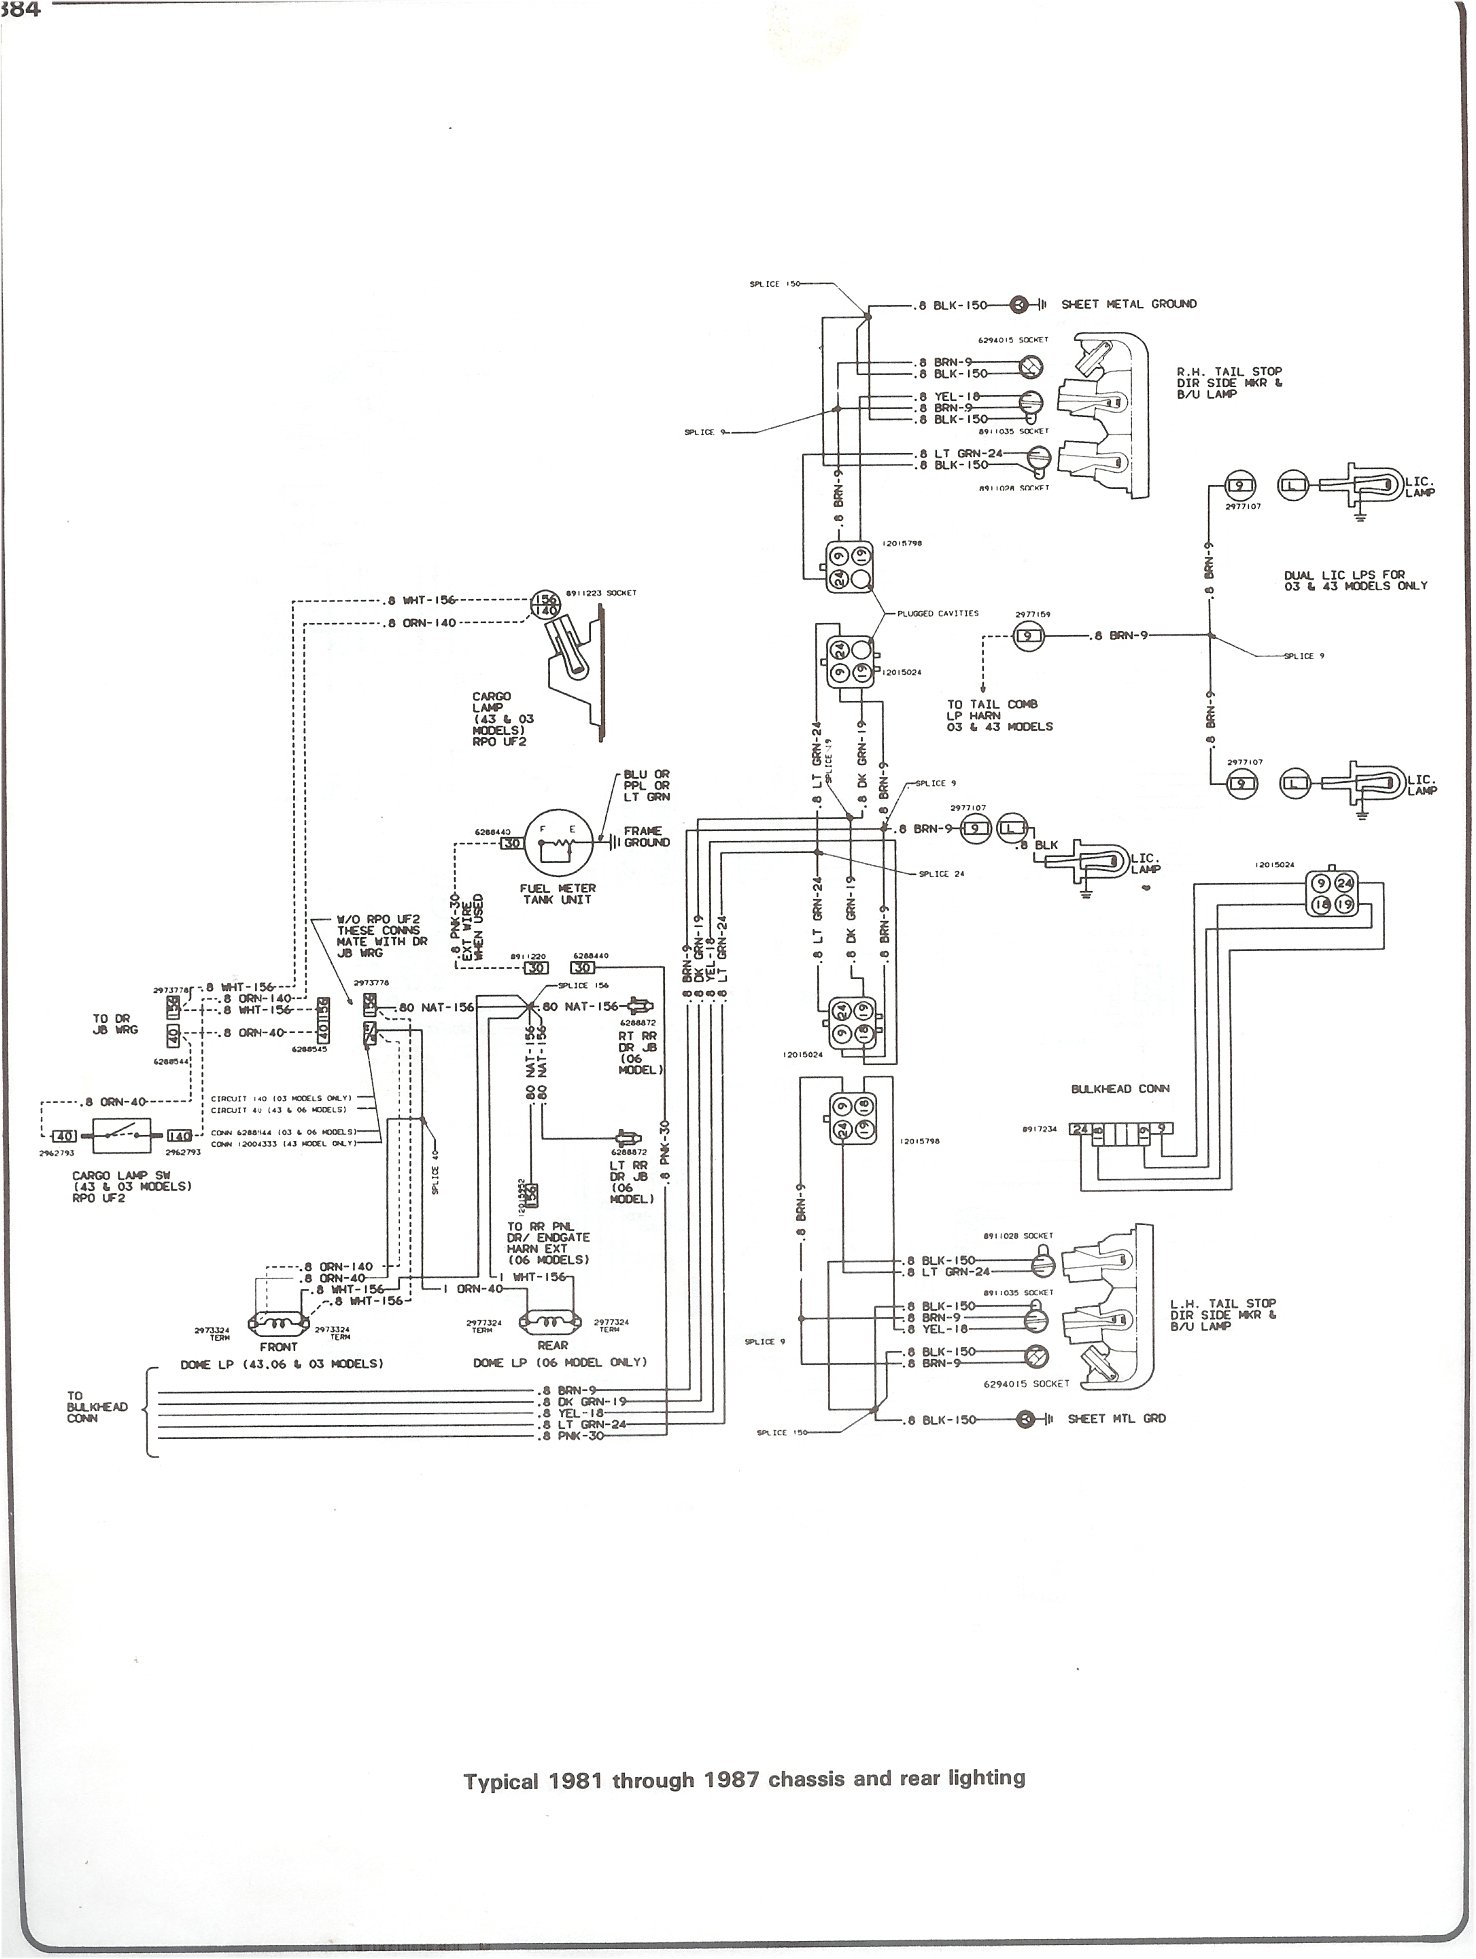 81 87_chass_rr_light complete 73 87 wiring diagrams 1986 chevy truck wiring diagram at alyssarenee.co